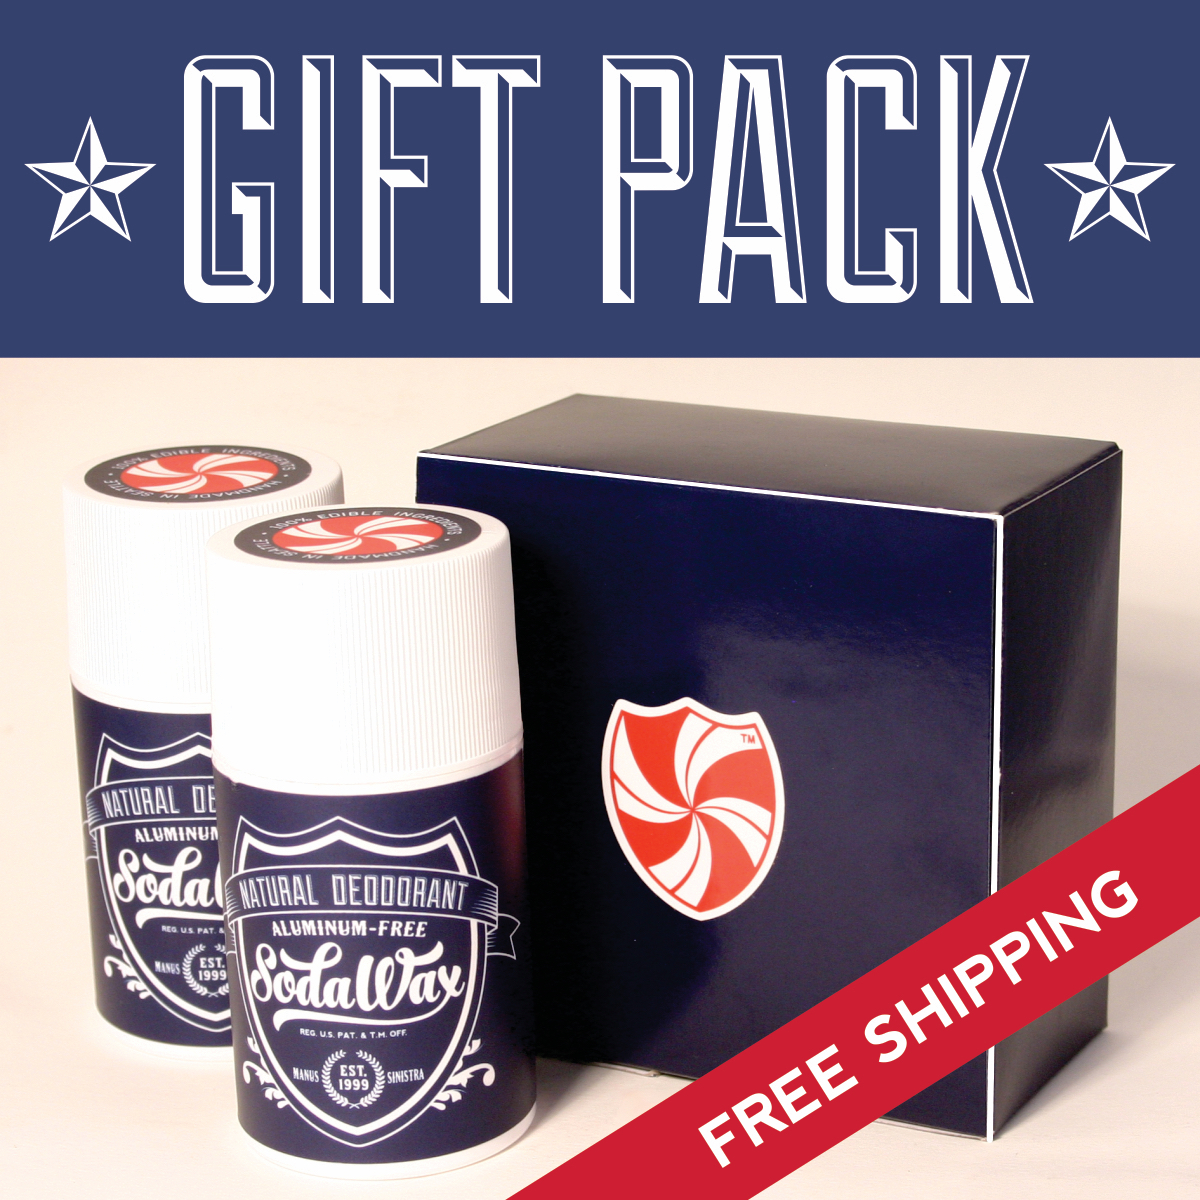 FREE SHIPPING! Personalized Gift Pack *Pick Any Two SodaWax Scents* (2×3.3oz/96g)